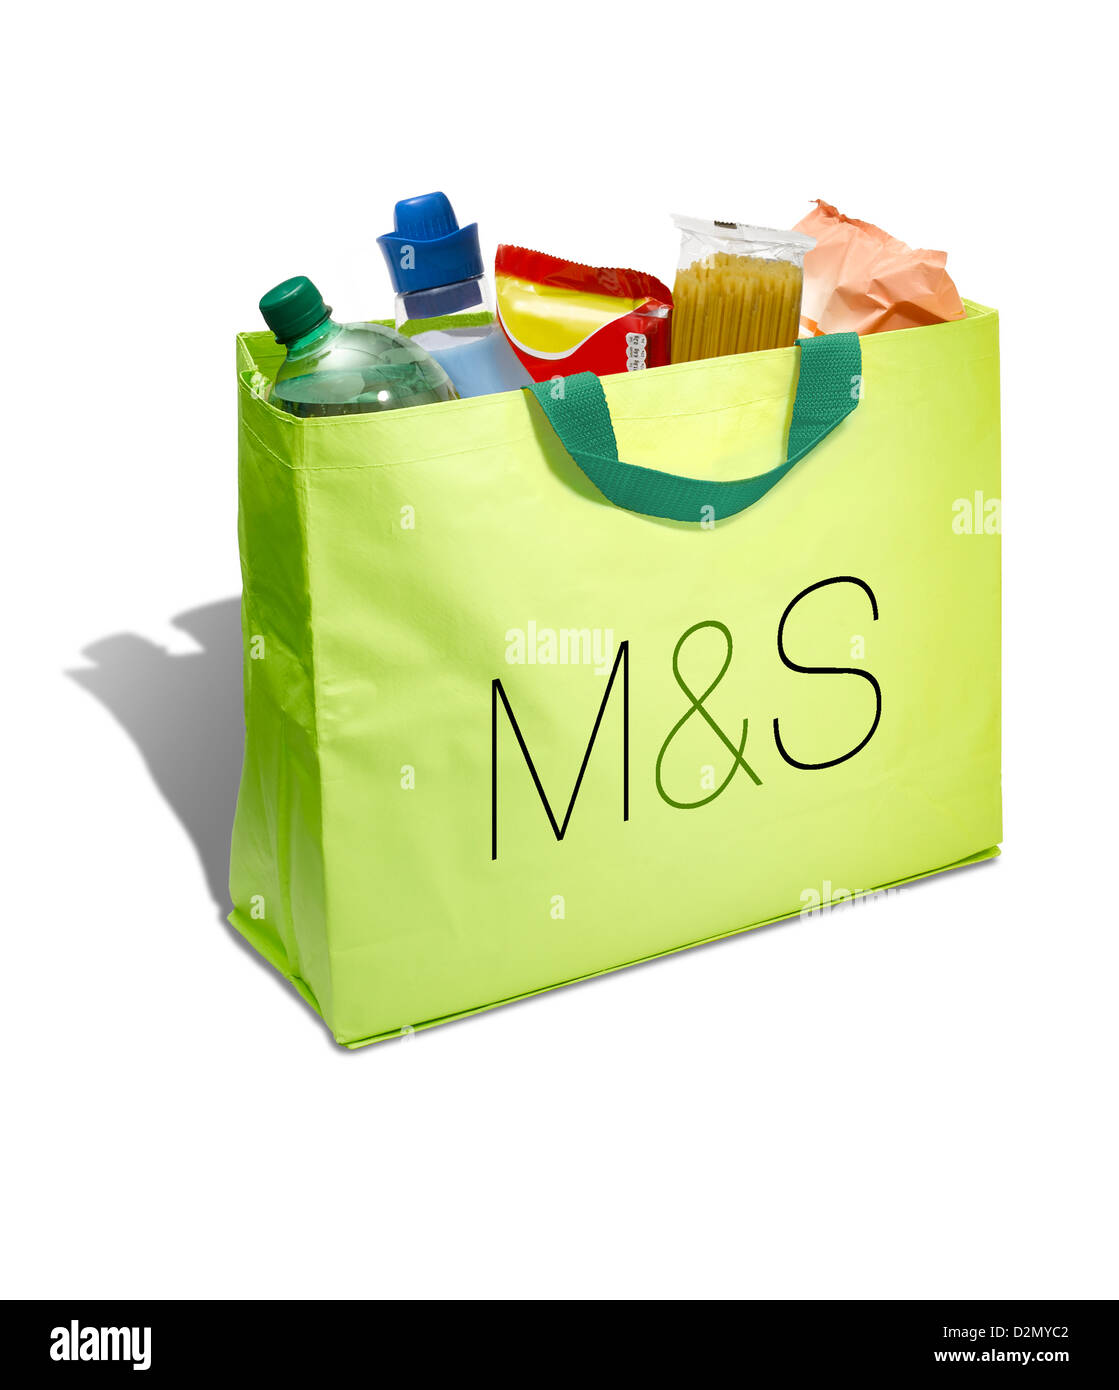 White apron marks and spencer - A Lime Green Marks And Spencer Shopping Bag On A White Background Stock Image